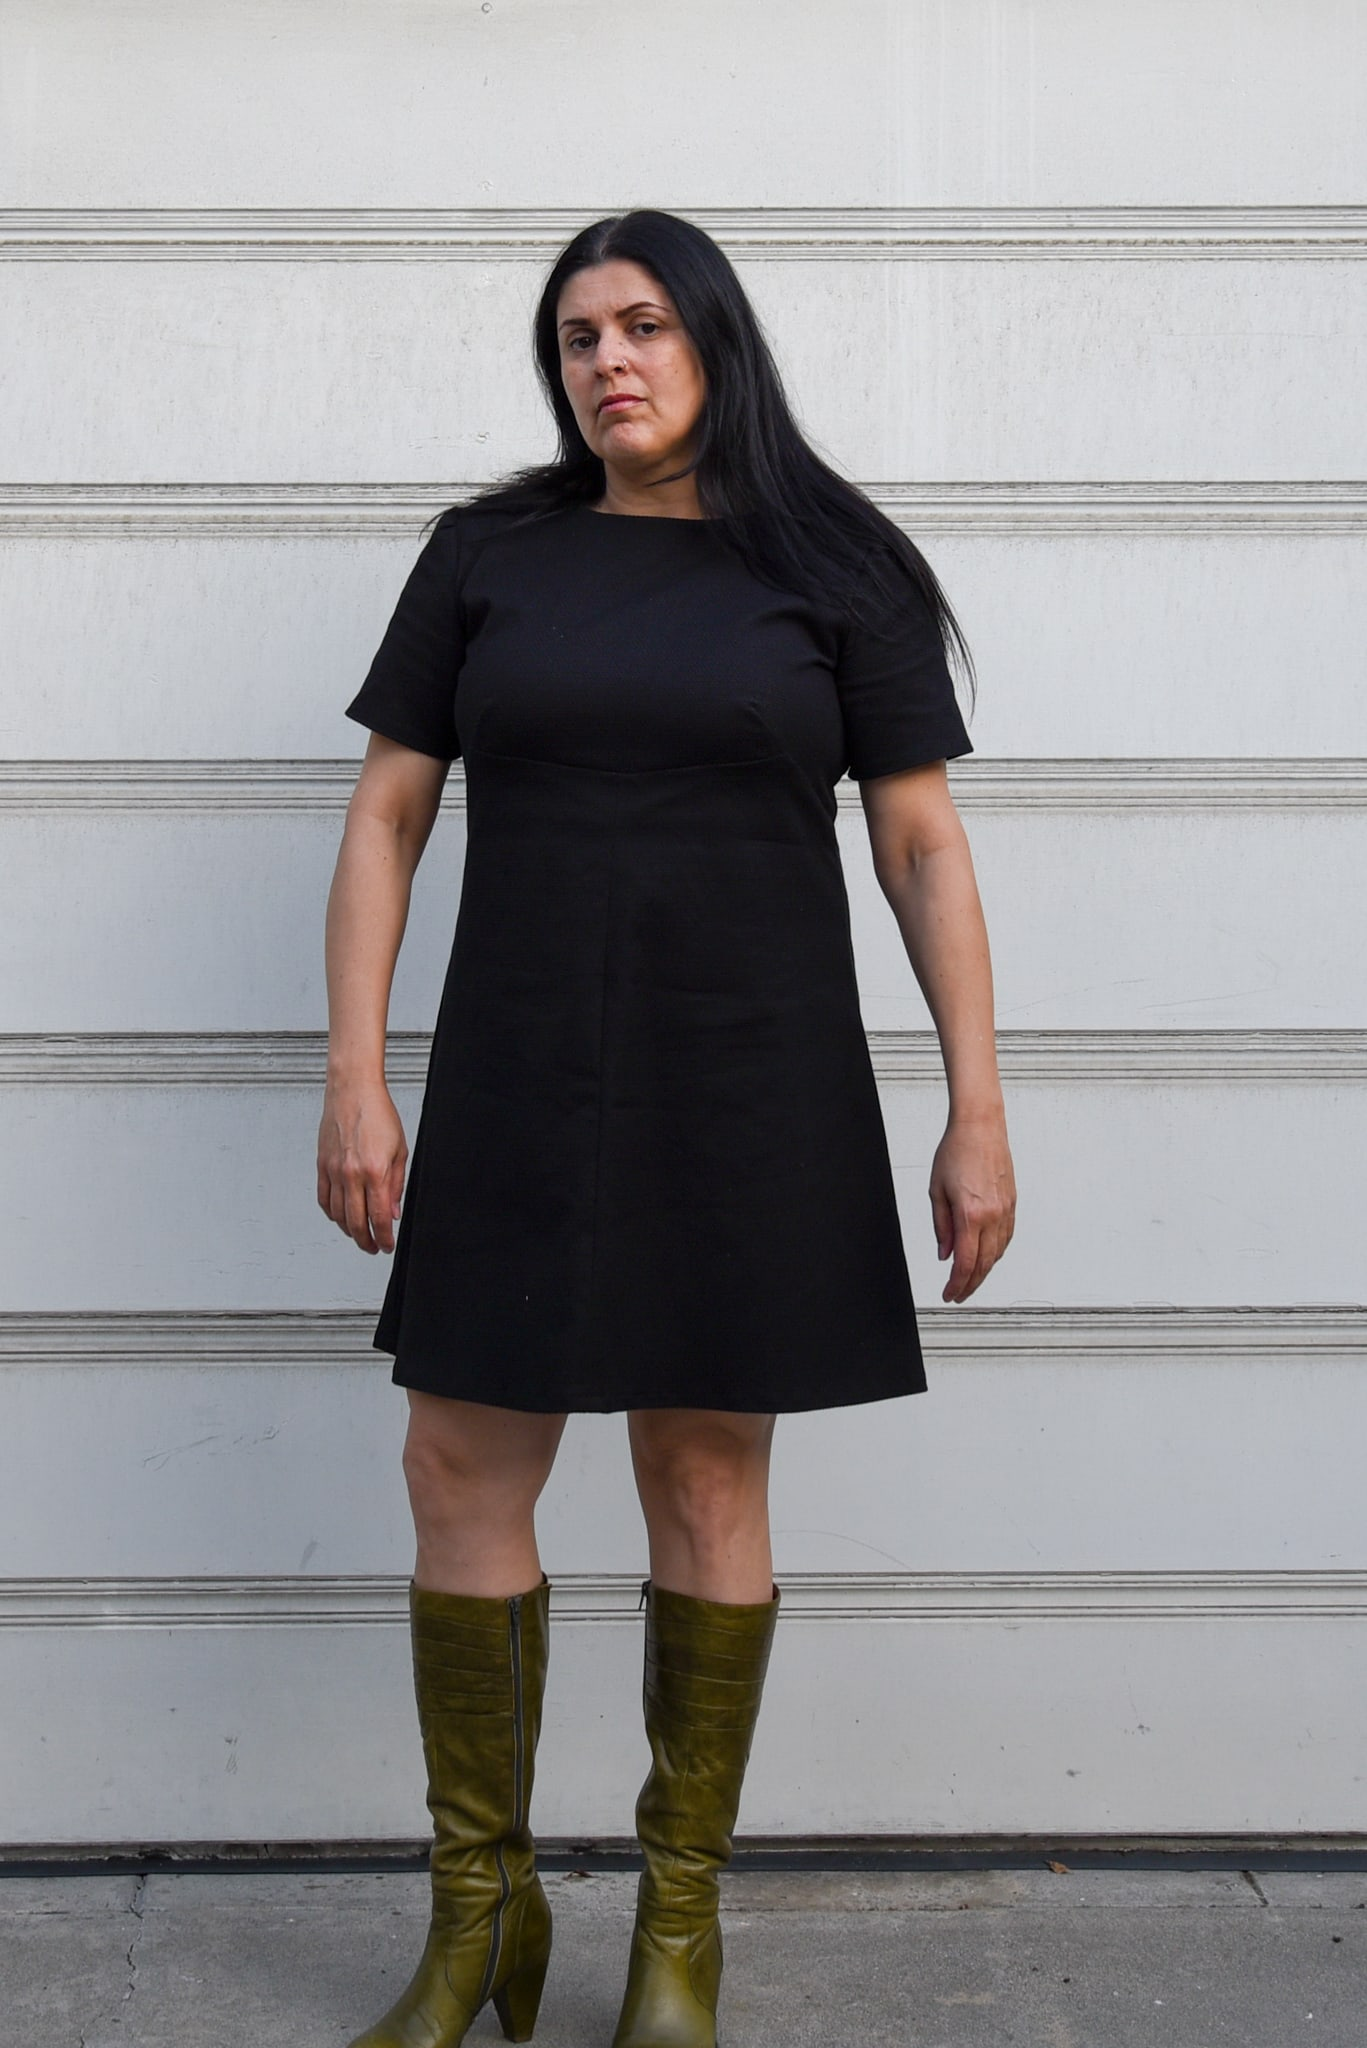 Image of woman standing in front of a garage door wearing Simplicity 3833, an A-line dress in black pique cotton and boots